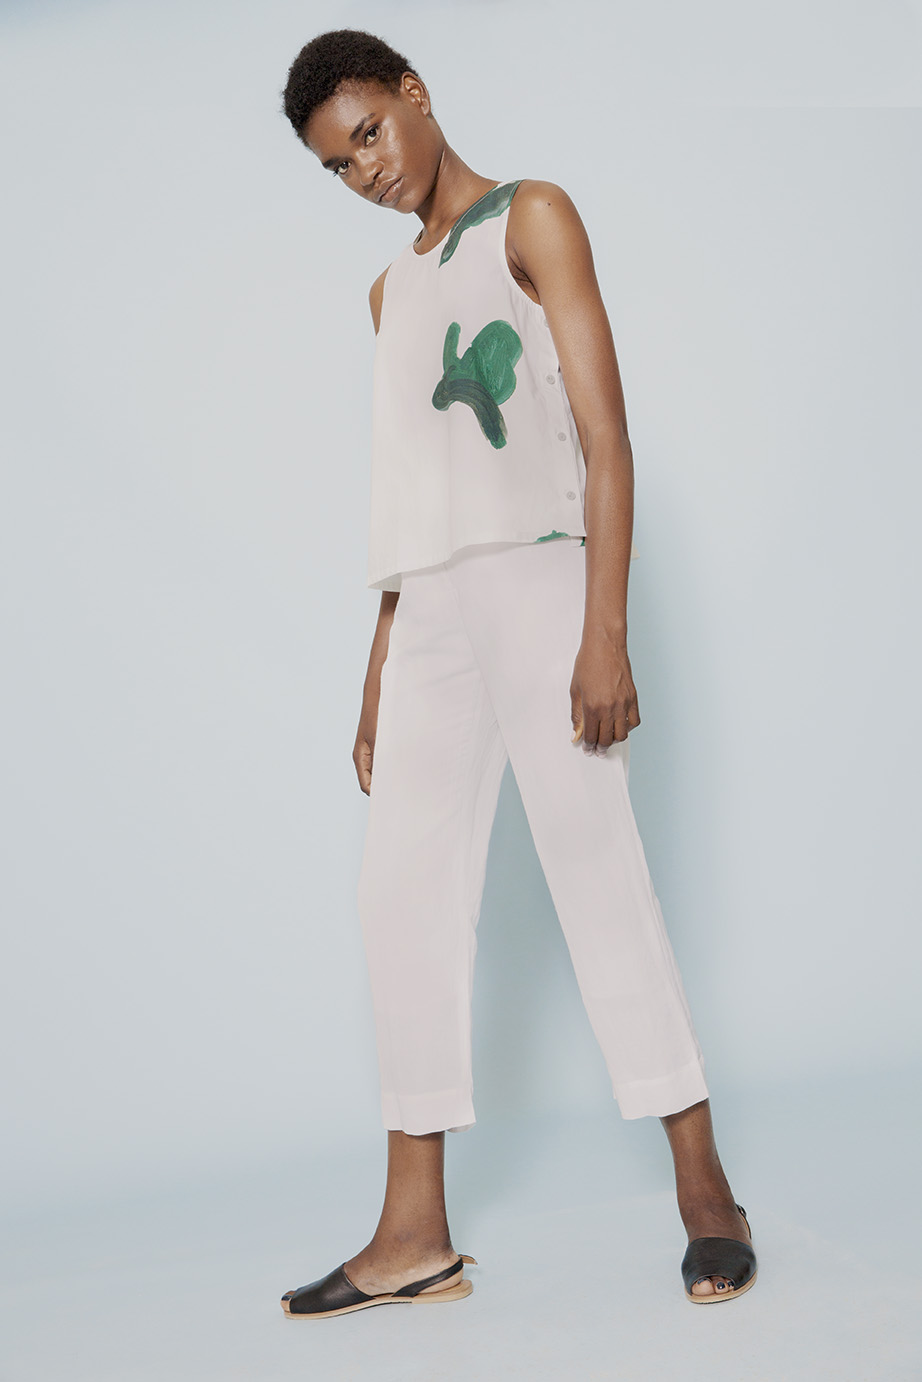 wray SS17 judith top printed print green dress isle pant white linen.jpg